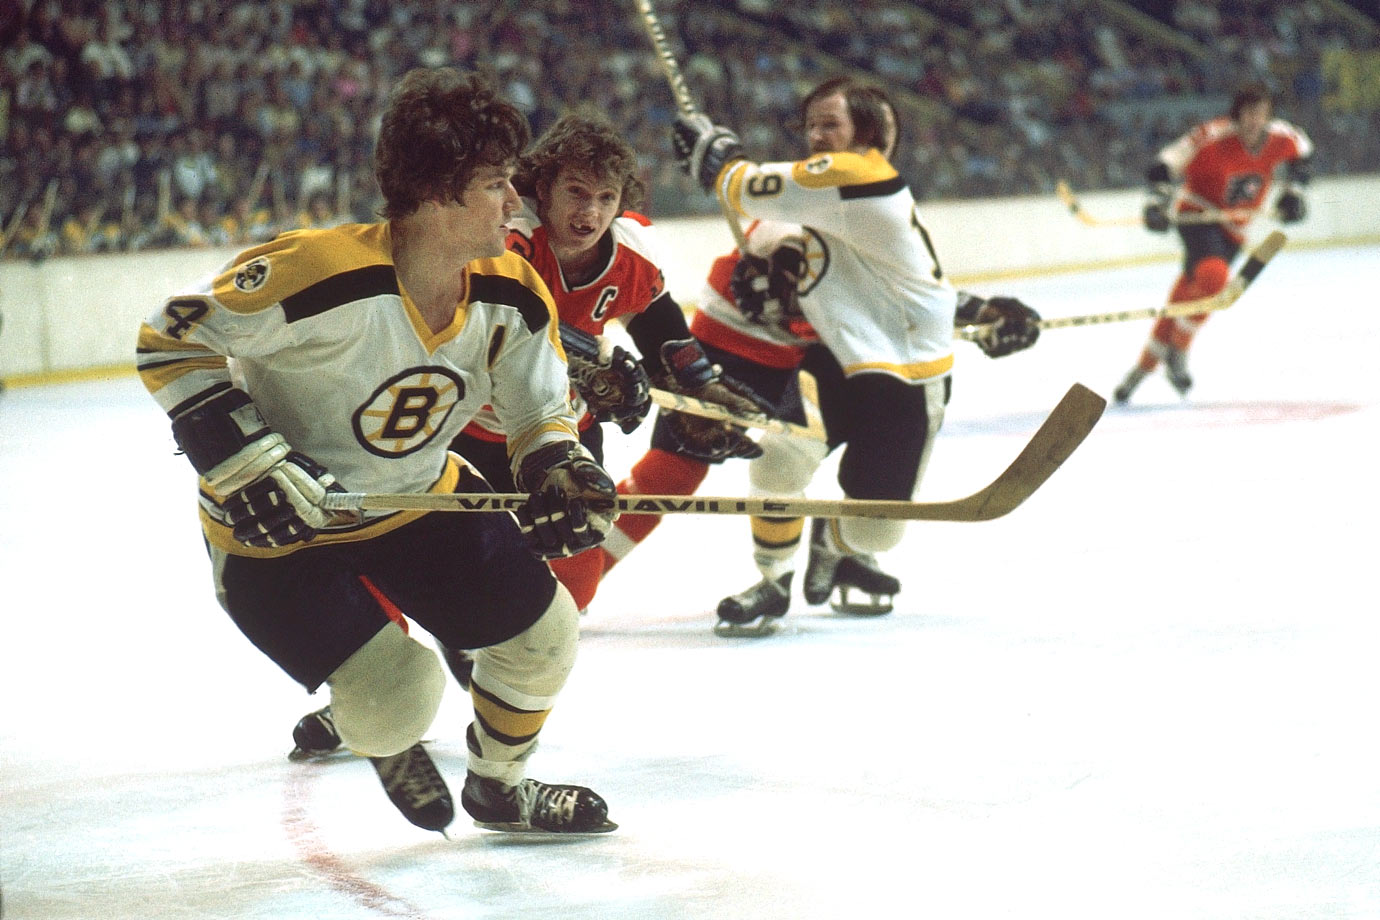 Incessant, painful knee injuries plagued Bobby Orr, who had countless operations and ended up skating on little more than bone on bone. After setting a goal-scoring record for defensemen (46, in 1974-75), his playing time and production declined dramatically.